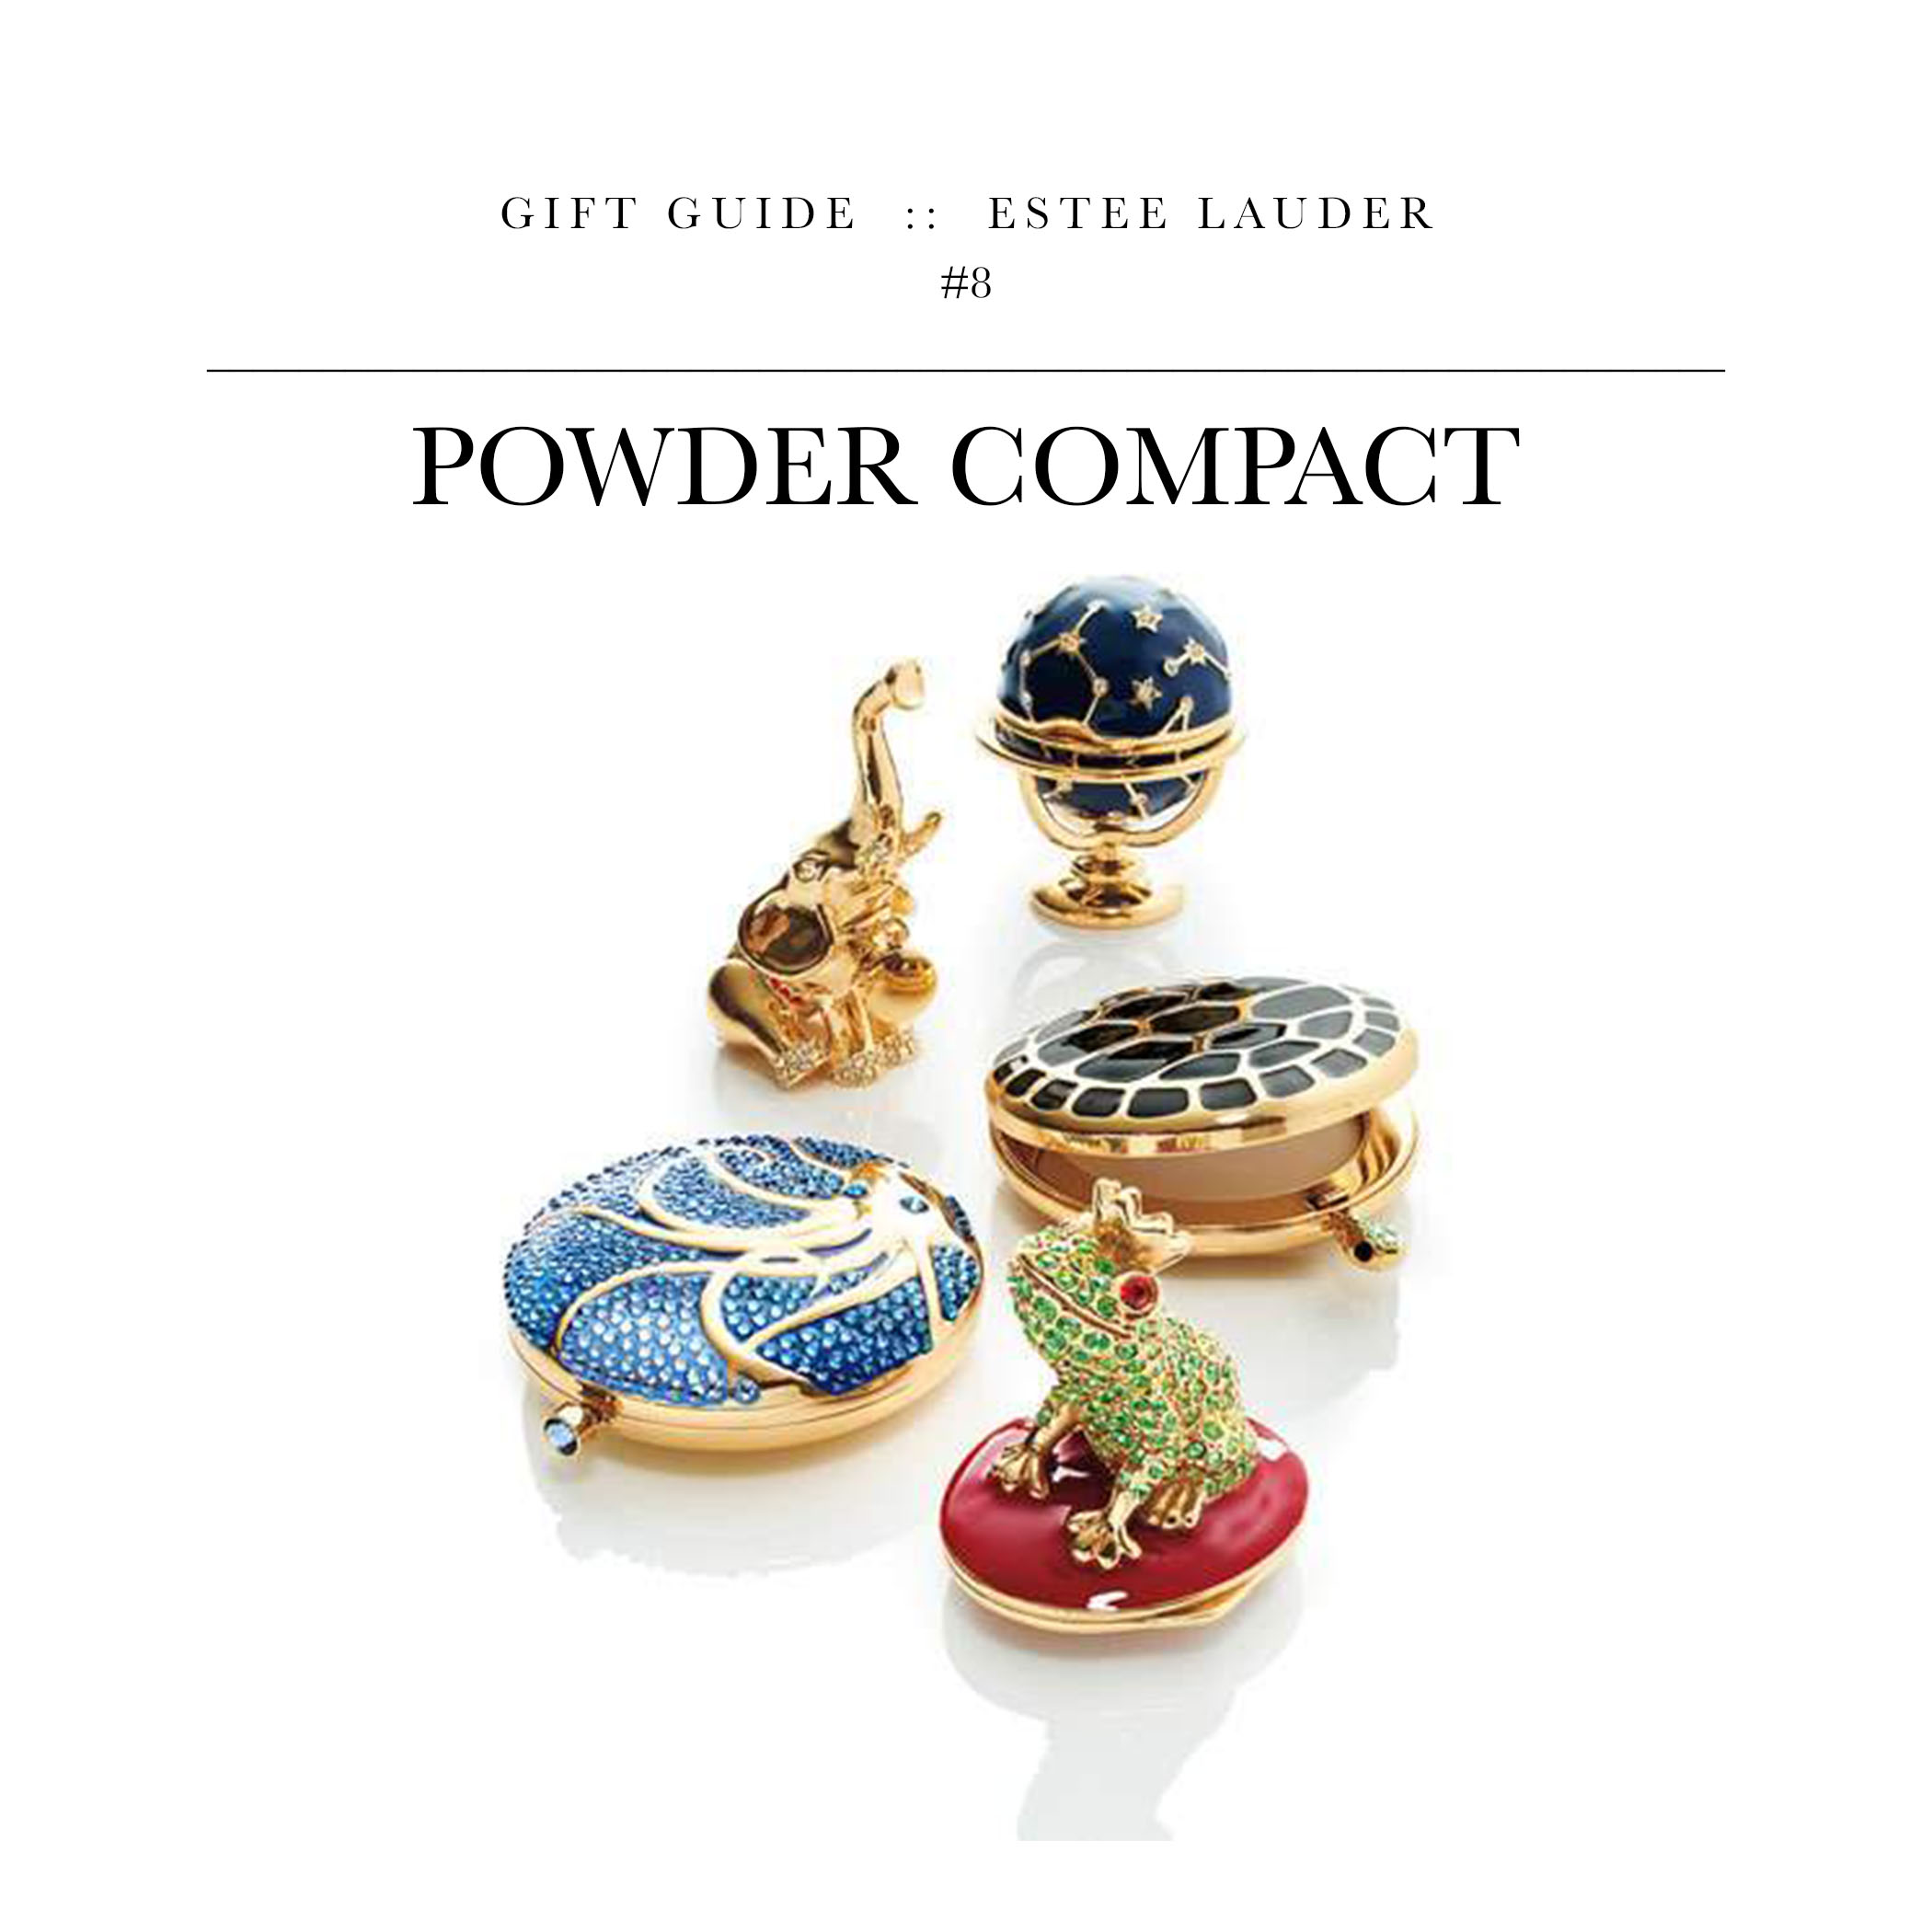 Powder Compact  via Estee Lauder //They're making a limited edition run of these – pretty cool. You'll need to pair it with something else though – I suggest a fragrance.